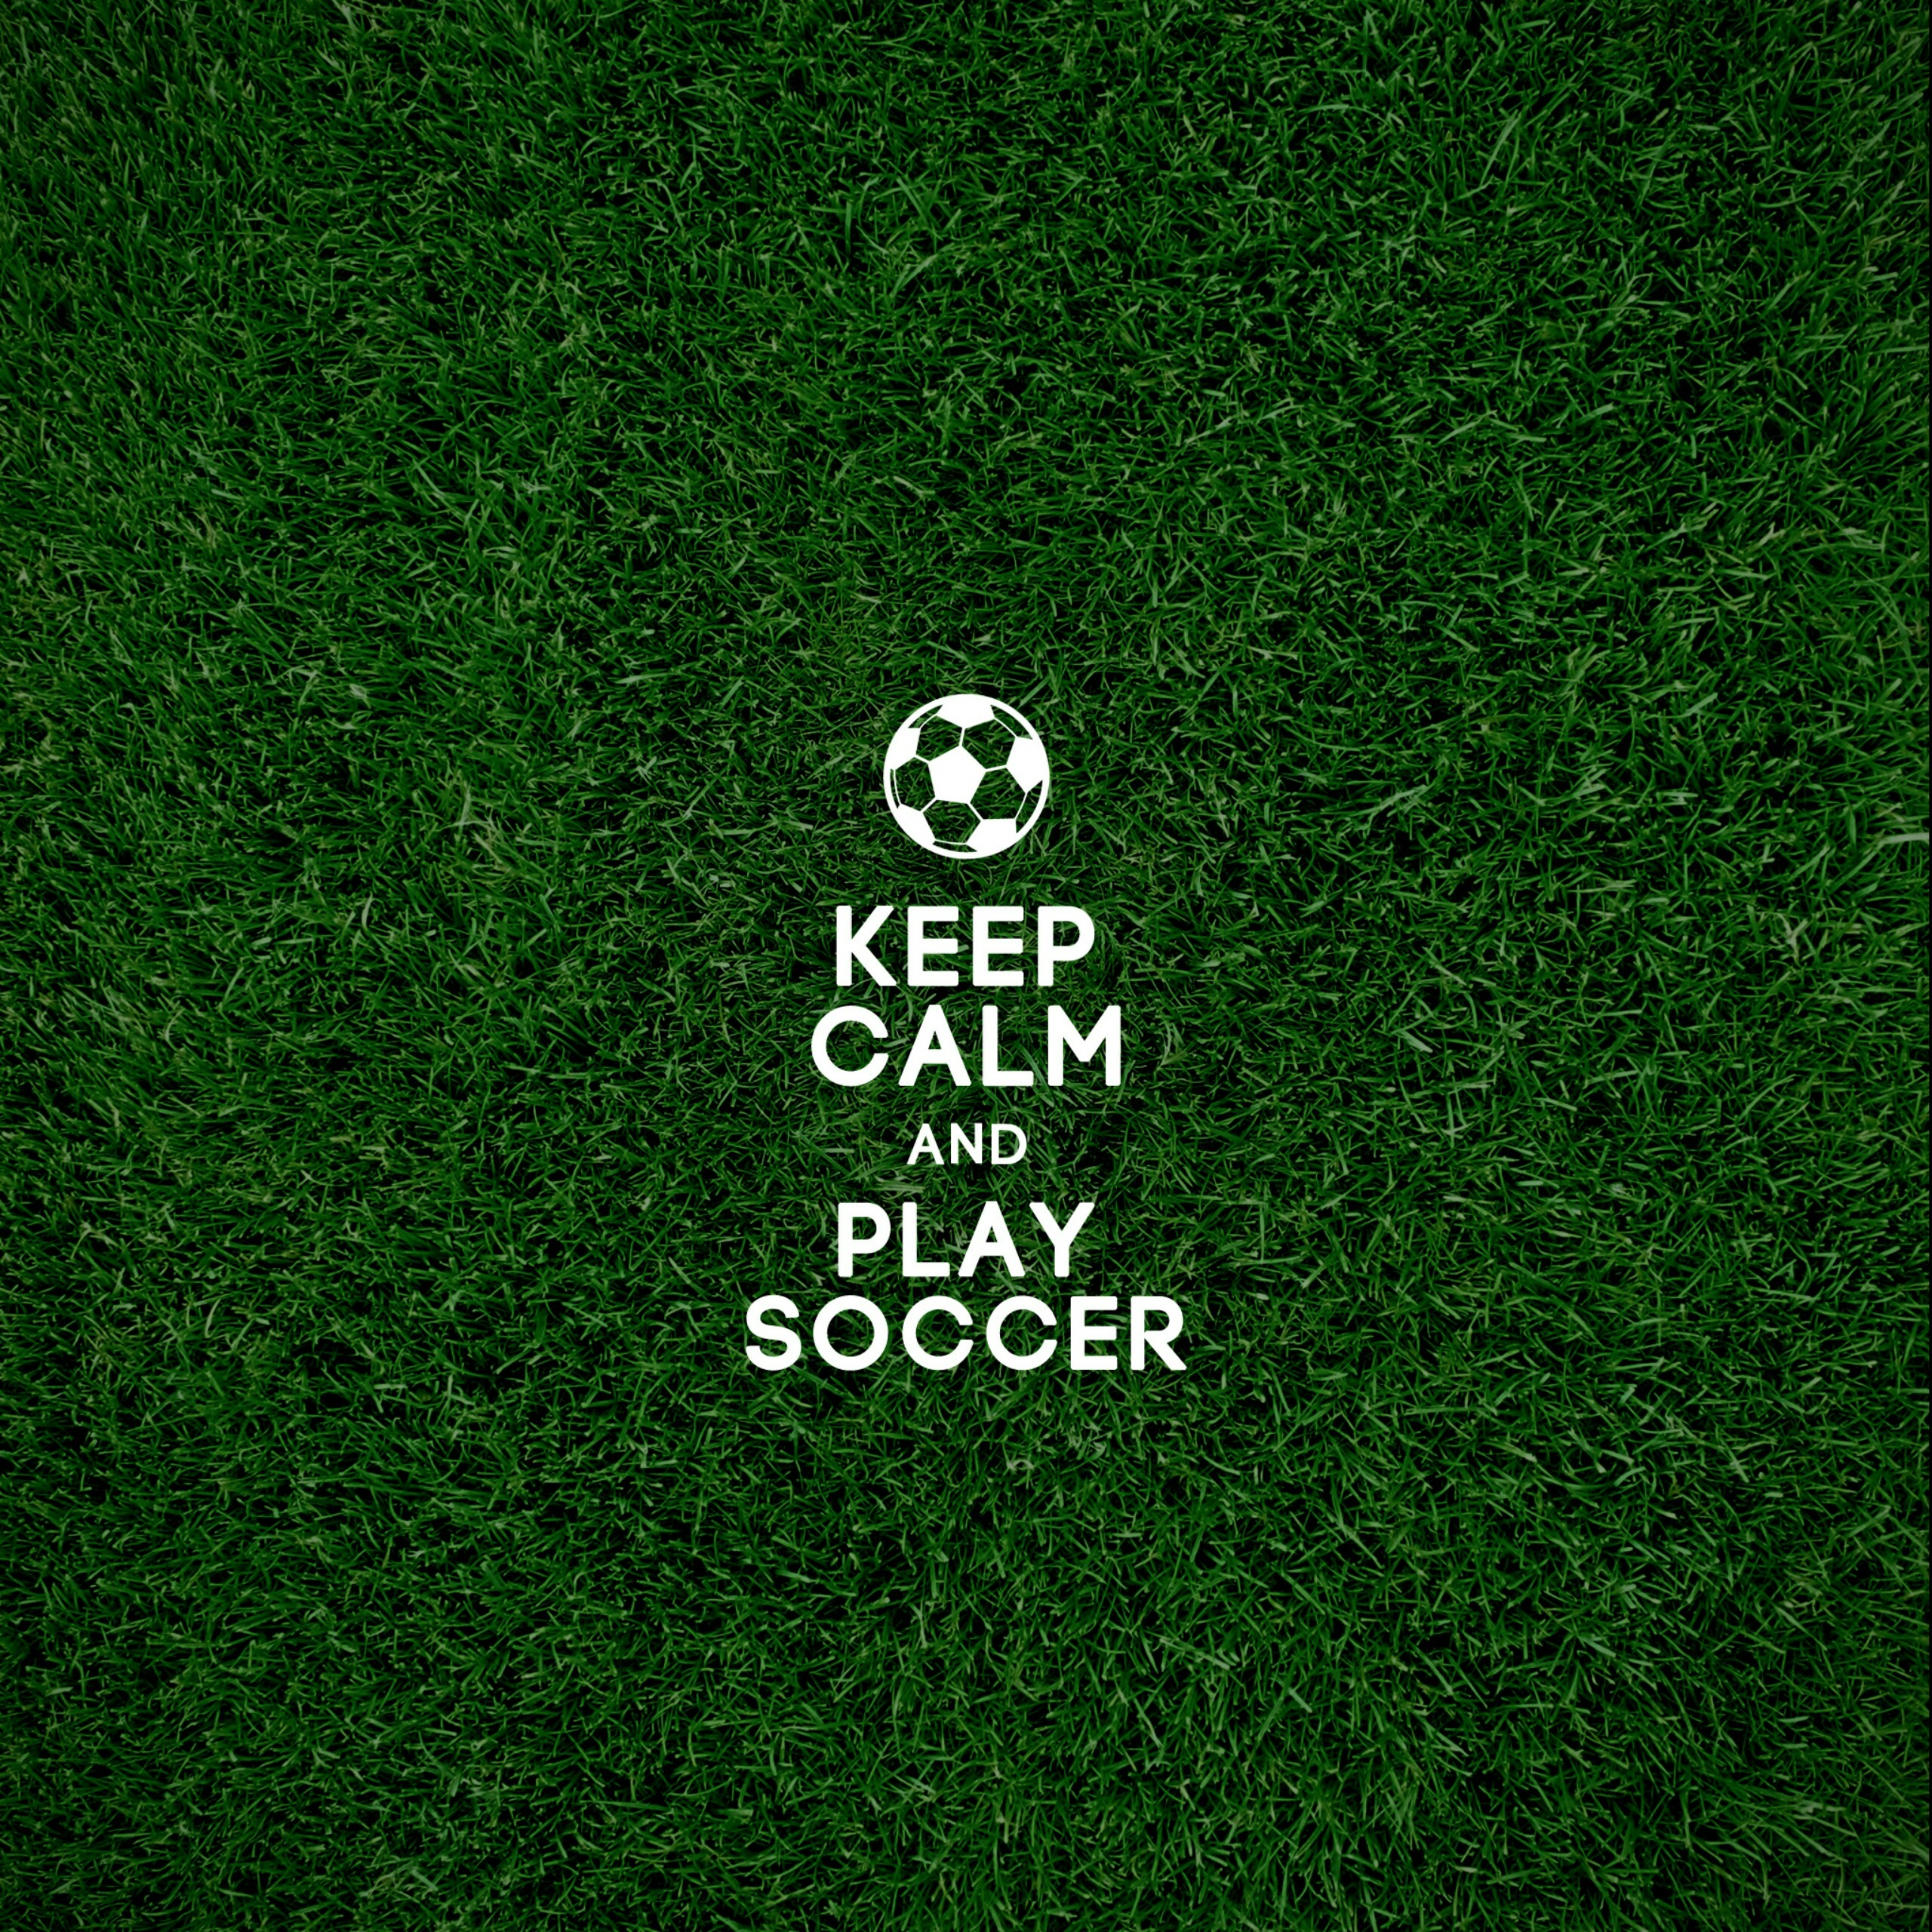 2560x2560 - Soccer Wallpapers 1